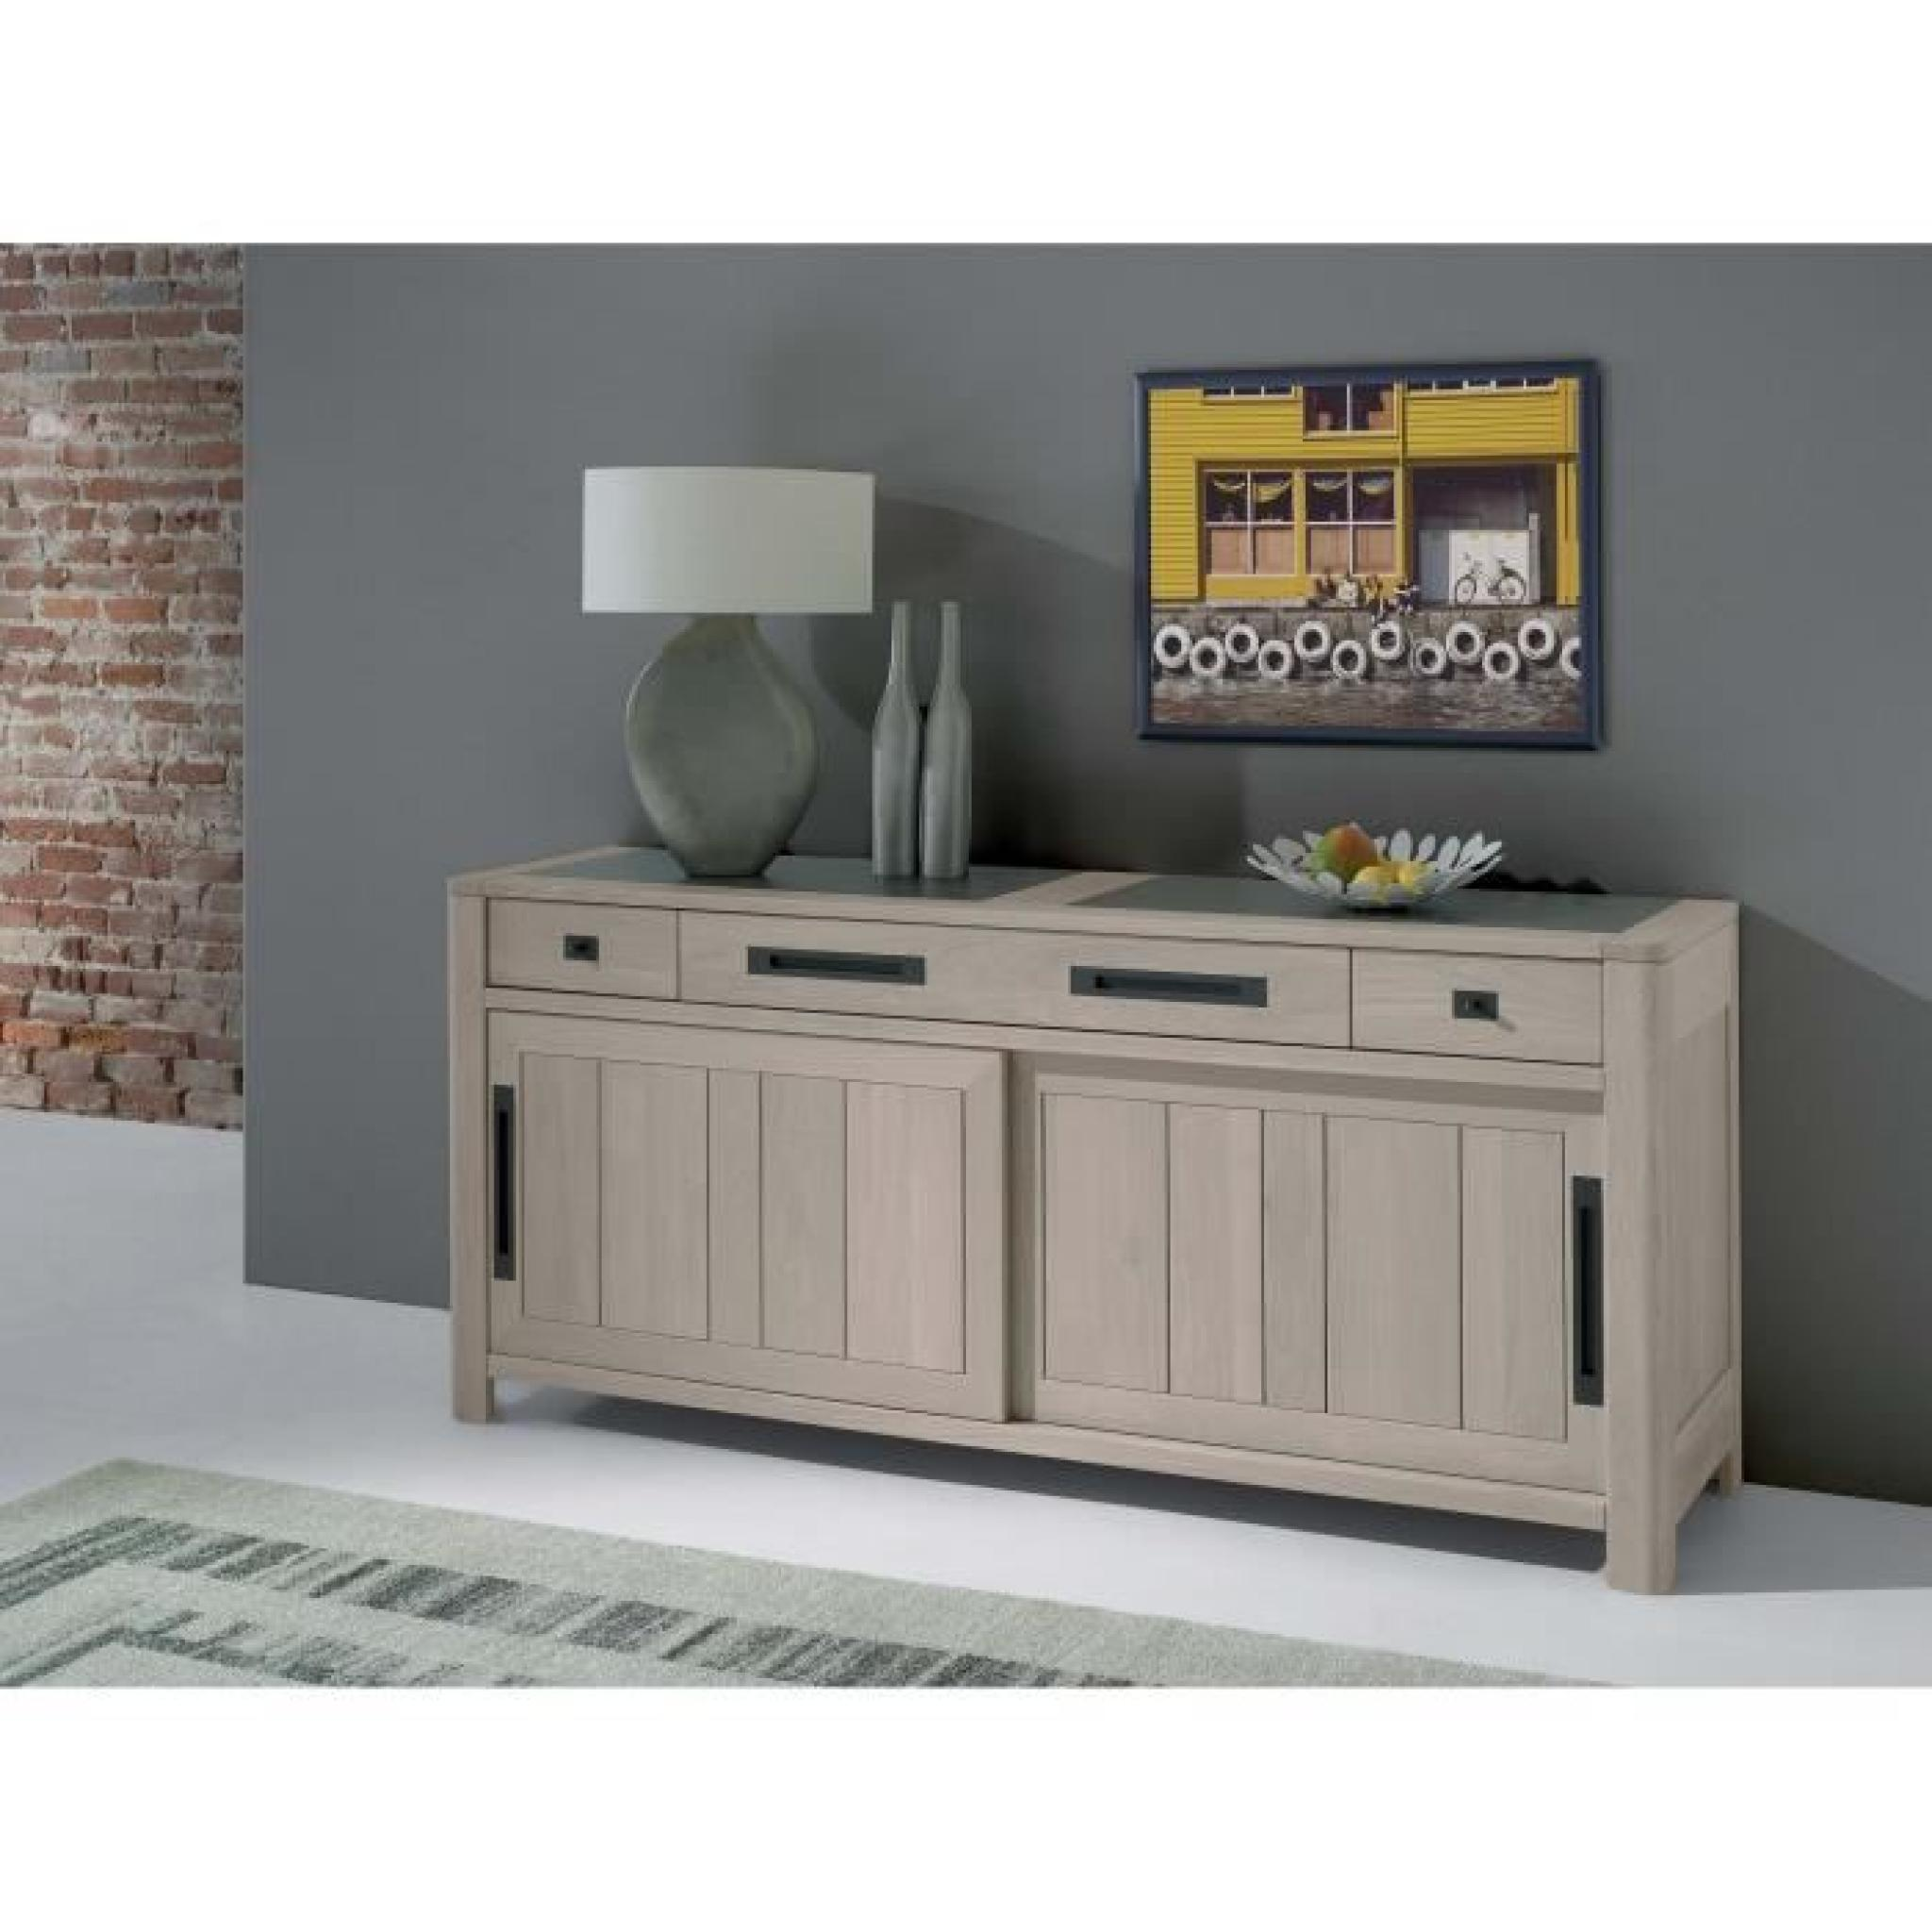 bahut denver 220cm chene ceramique achat vente buffet pas cher couleur et. Black Bedroom Furniture Sets. Home Design Ideas